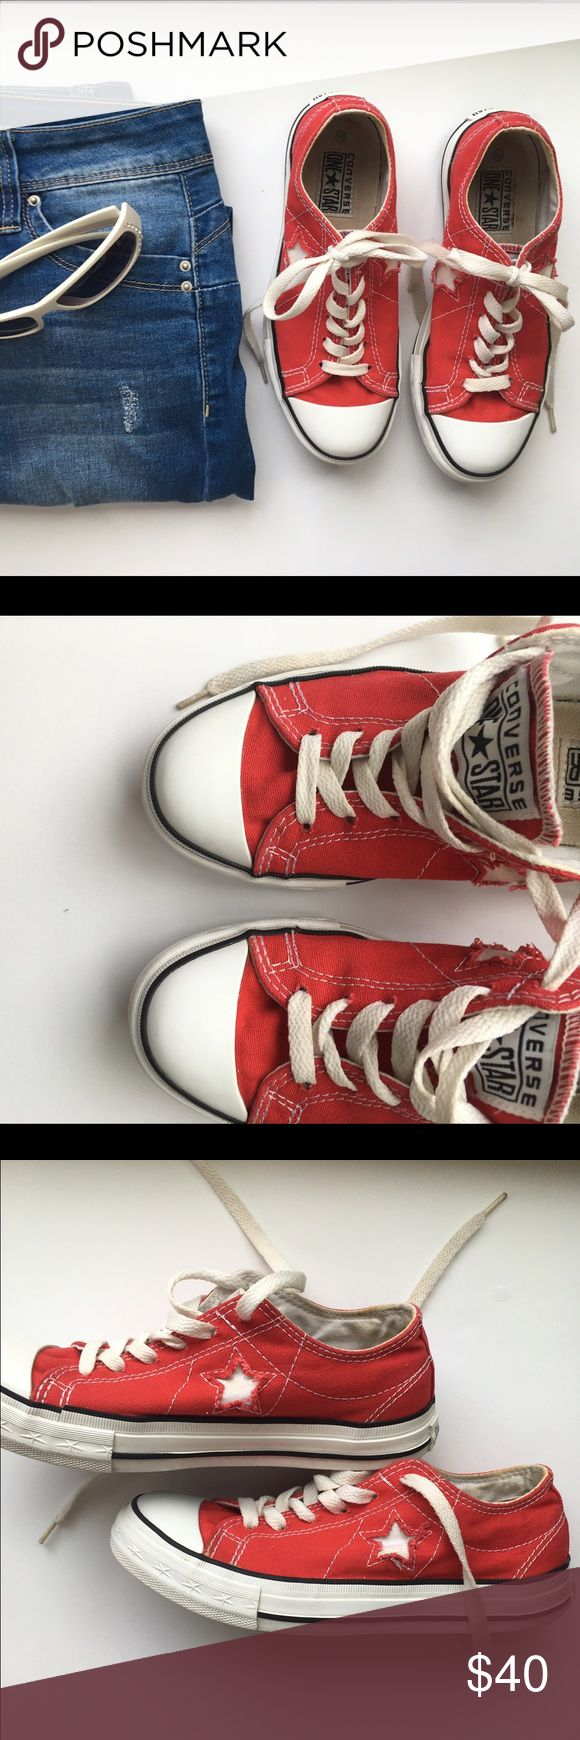 Women's Converse One Star lace up shoes Red Converse All Star lace up shoes. White stitching and cut our stars on shoes. Super cute! In good condition but the inside has some staining. Won't be scene though since it's the bottom of the inside. Soles and outside look new! Converse One Star Shoes